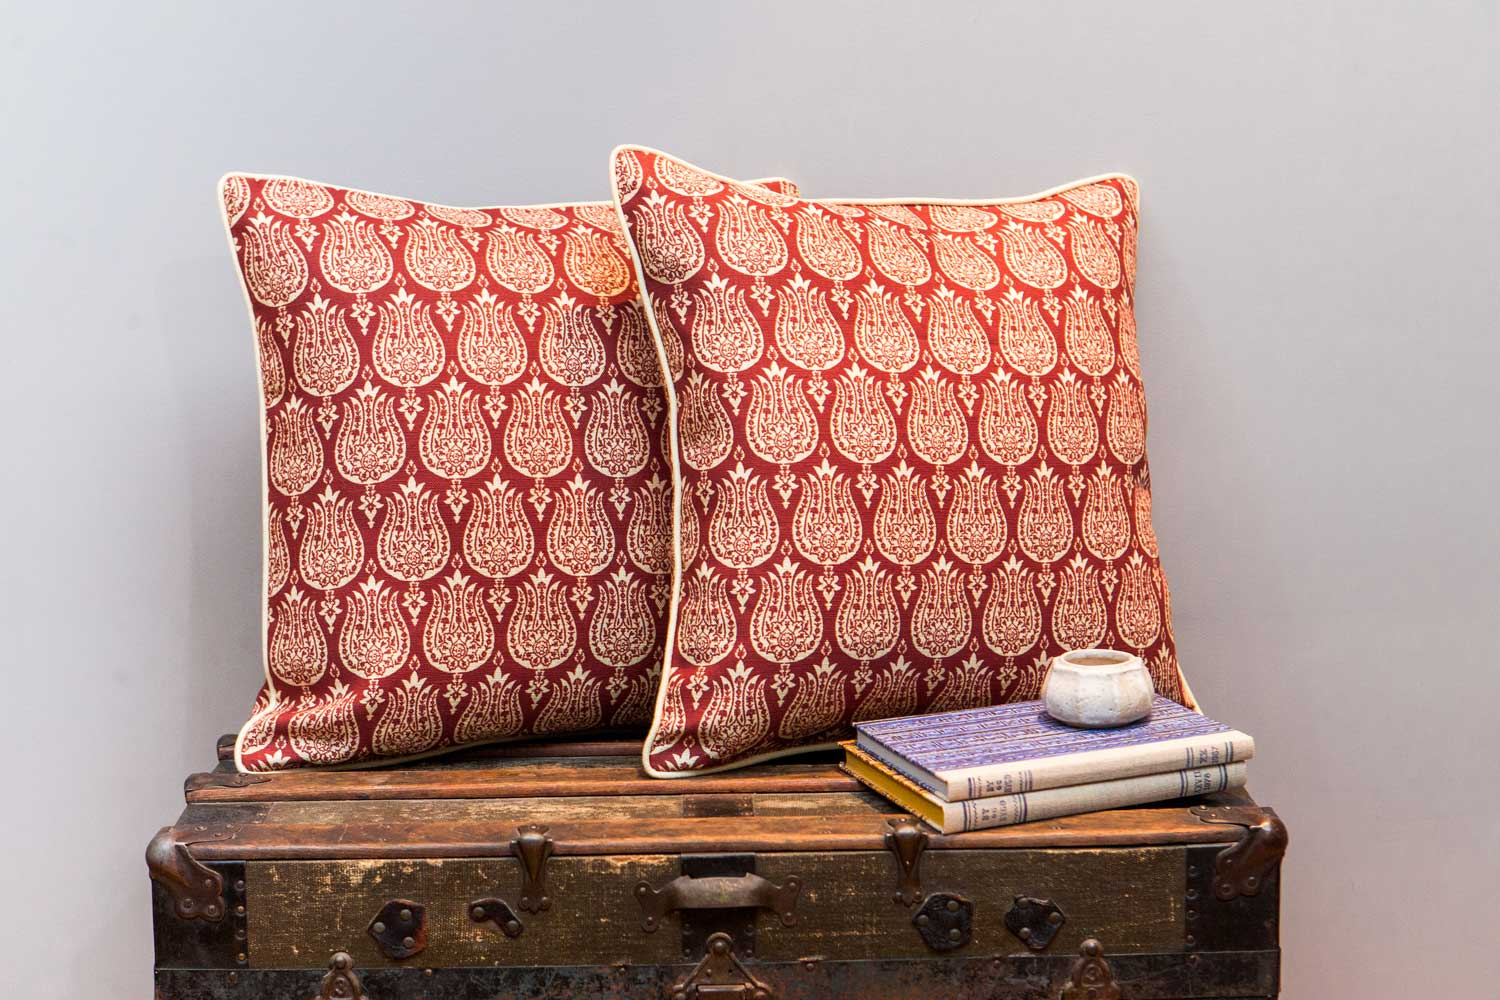 Abbot-Atlas-ottoman-tulip-red-fabric-linen-printed-pillow-cushion-trunk.jpg